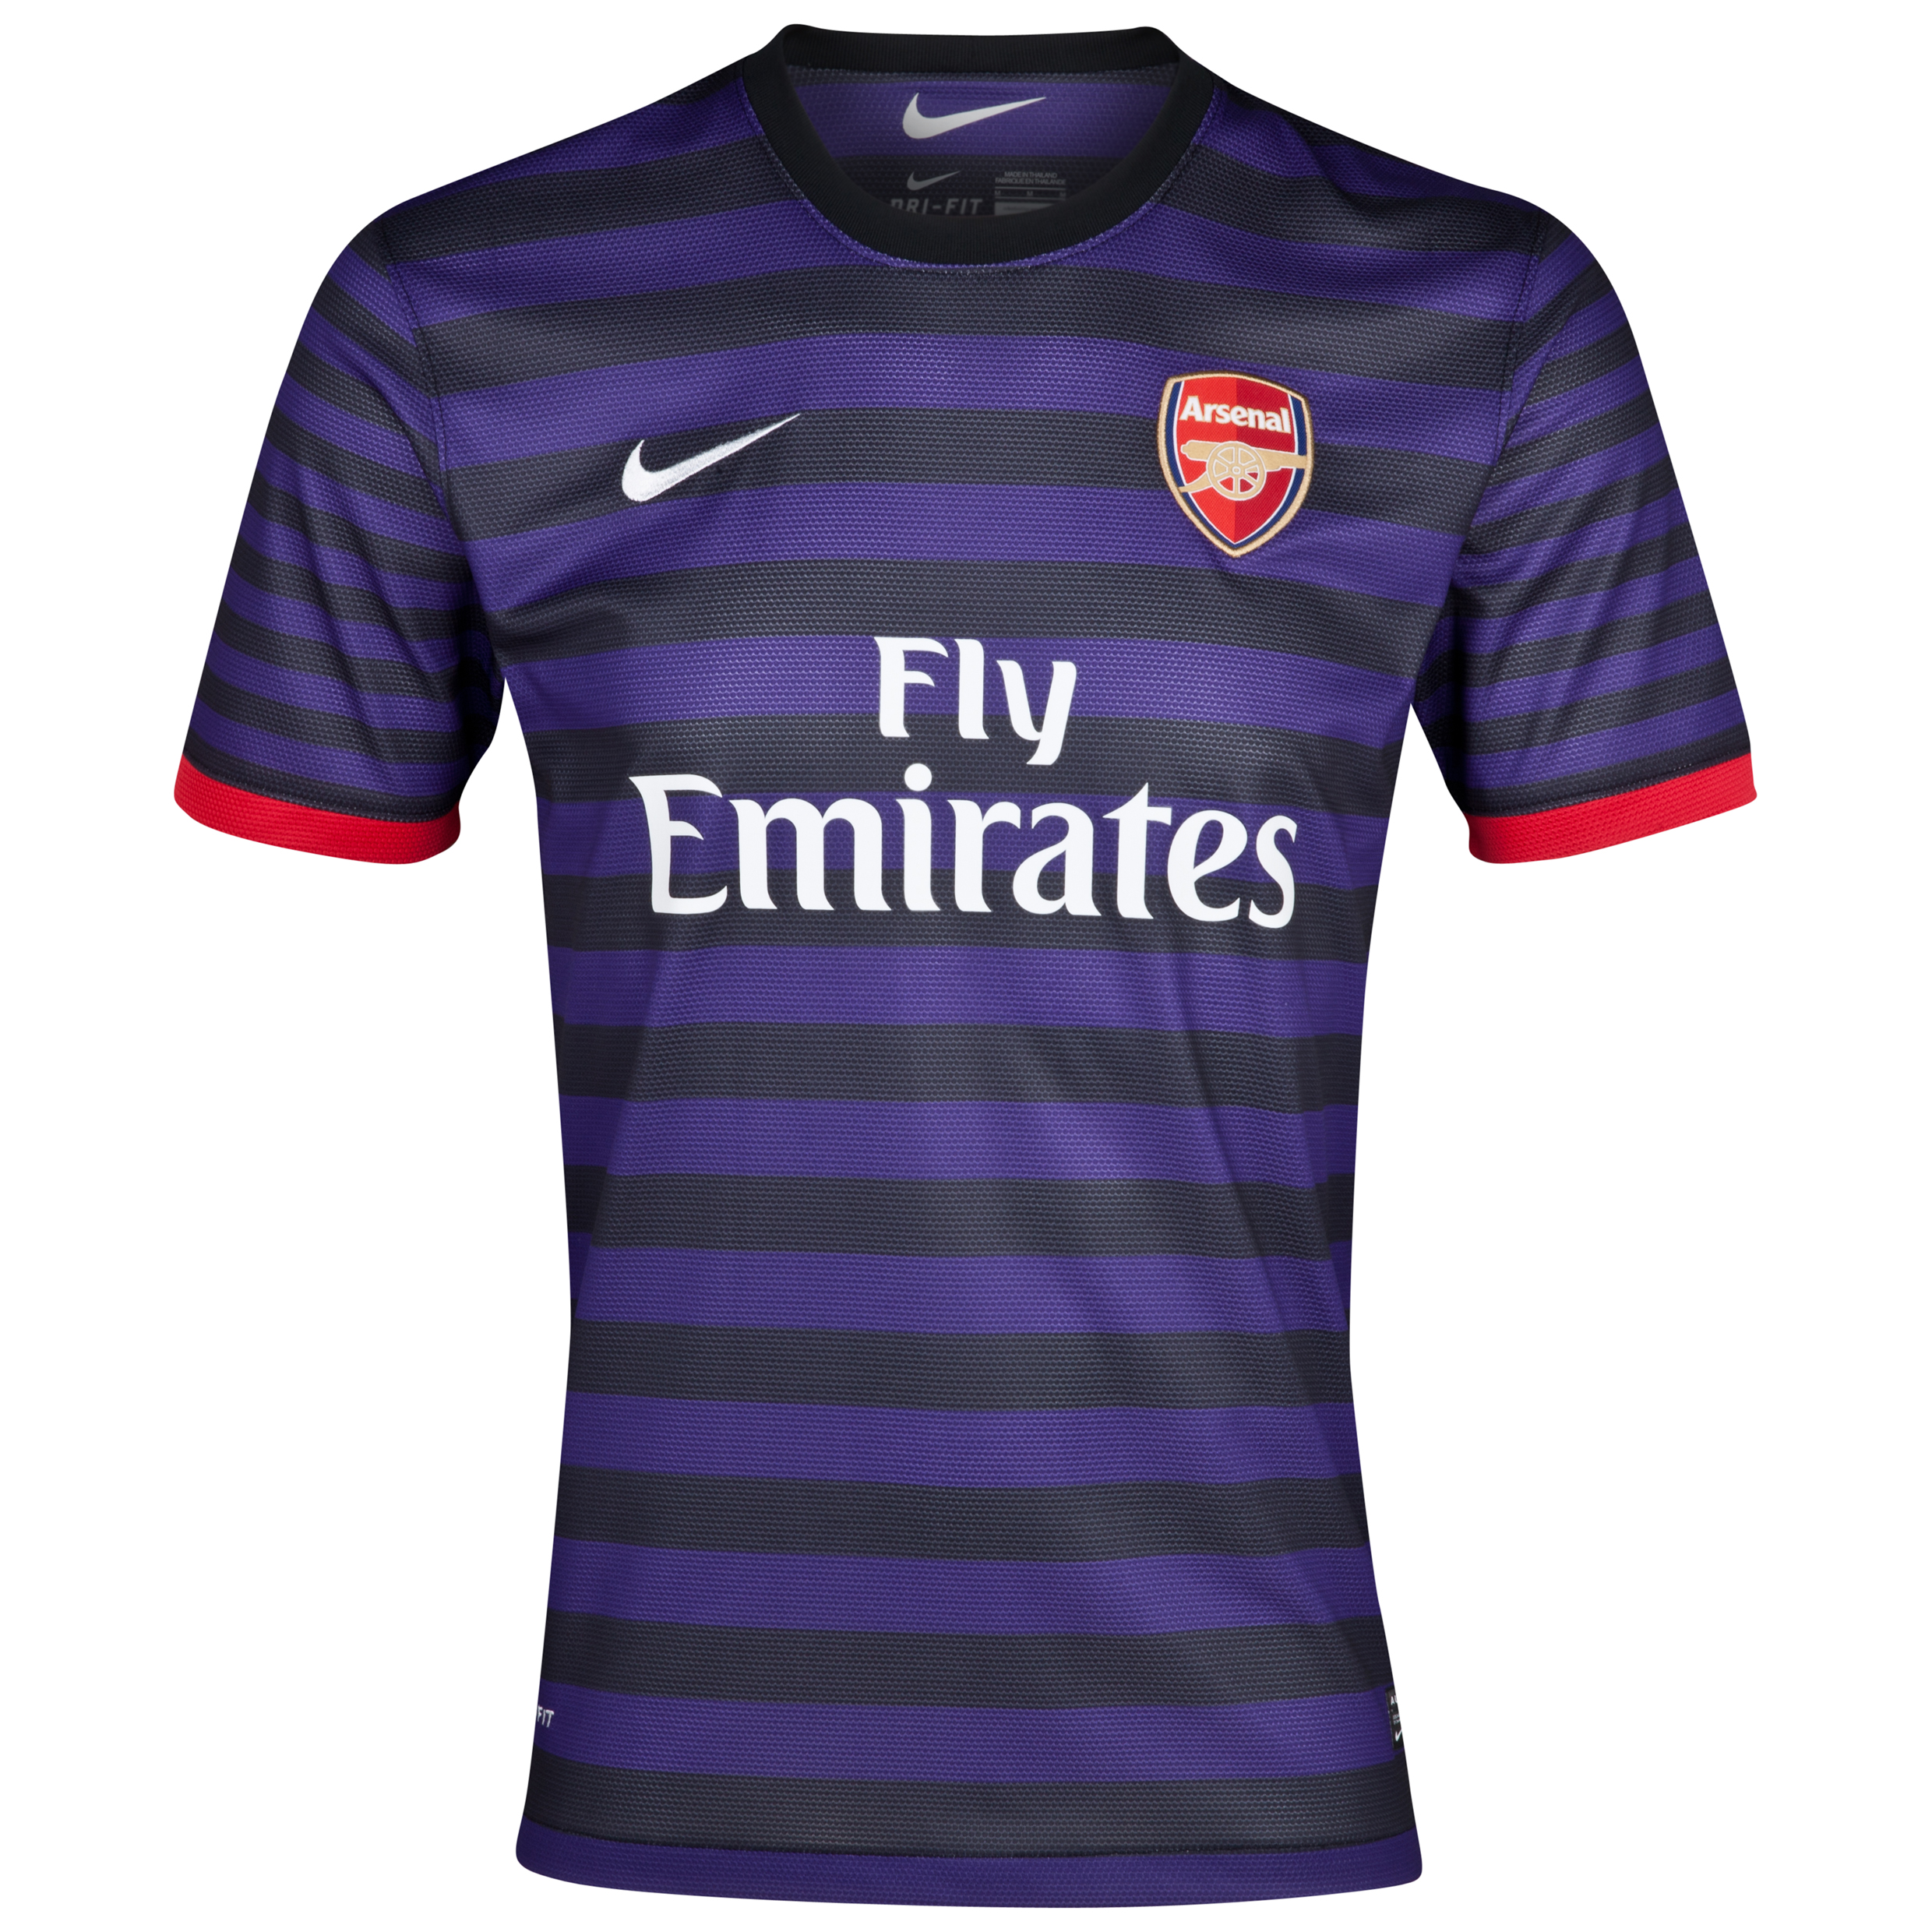 Arsenal Away Shirt  2012/13 Youths